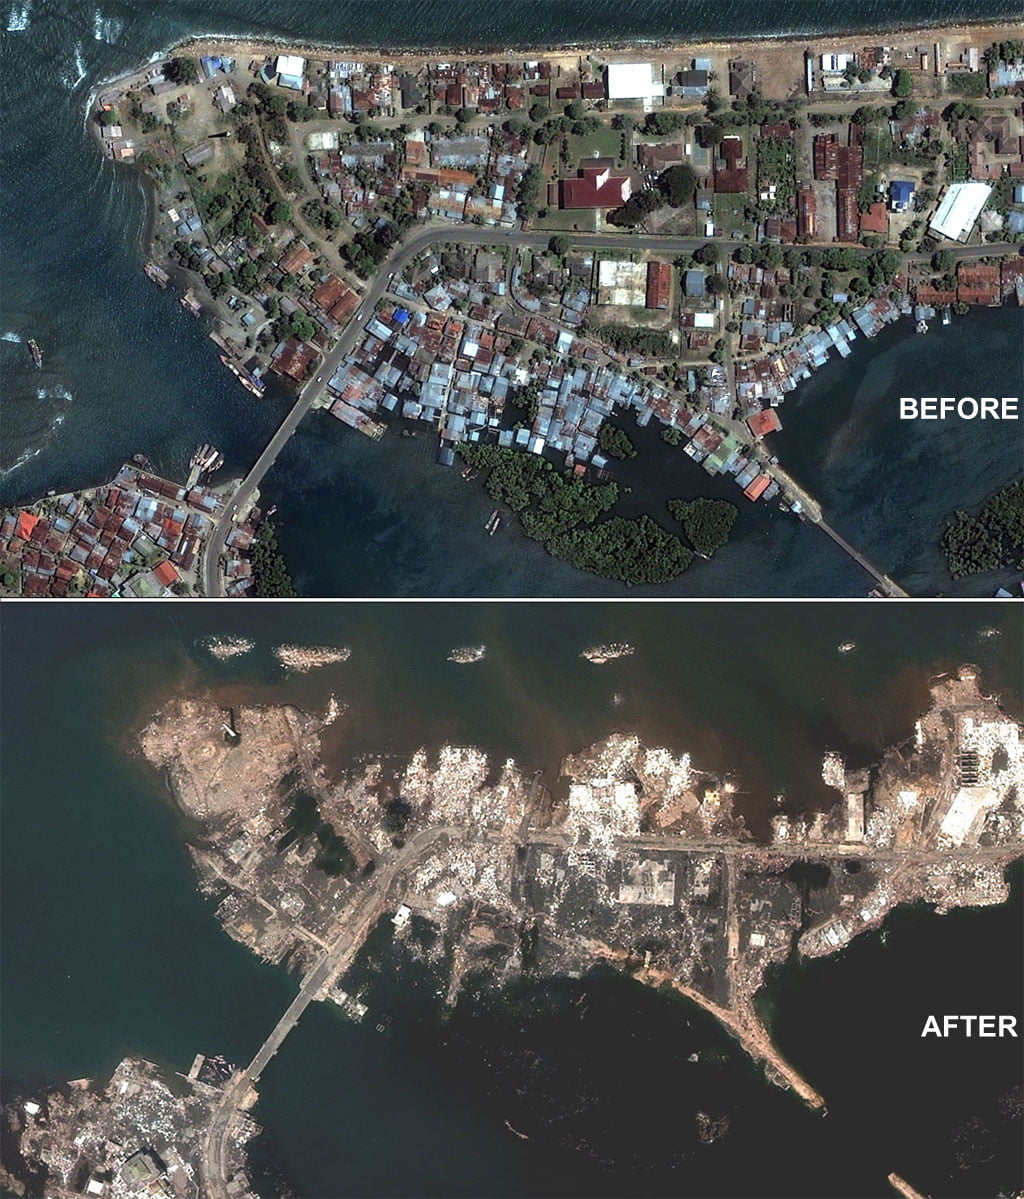 The city of Banda Aceh before and after the Indian Ocean Tsunami